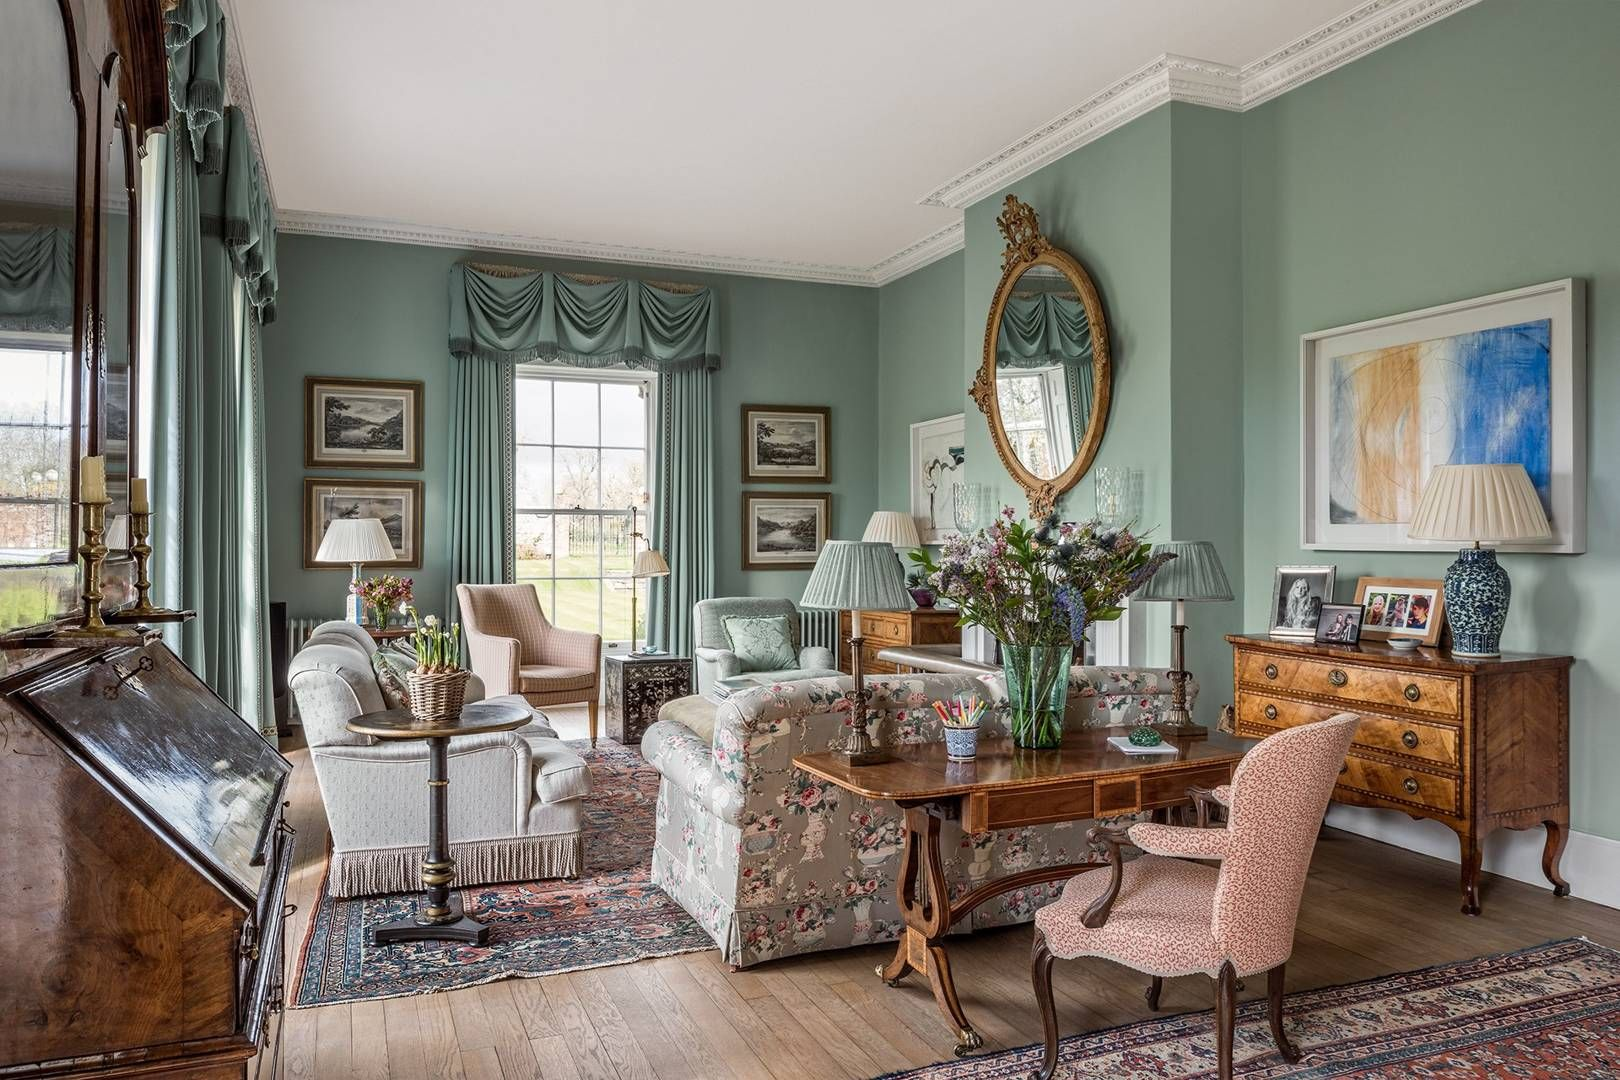 old style living room - Google Search | Mansion living room